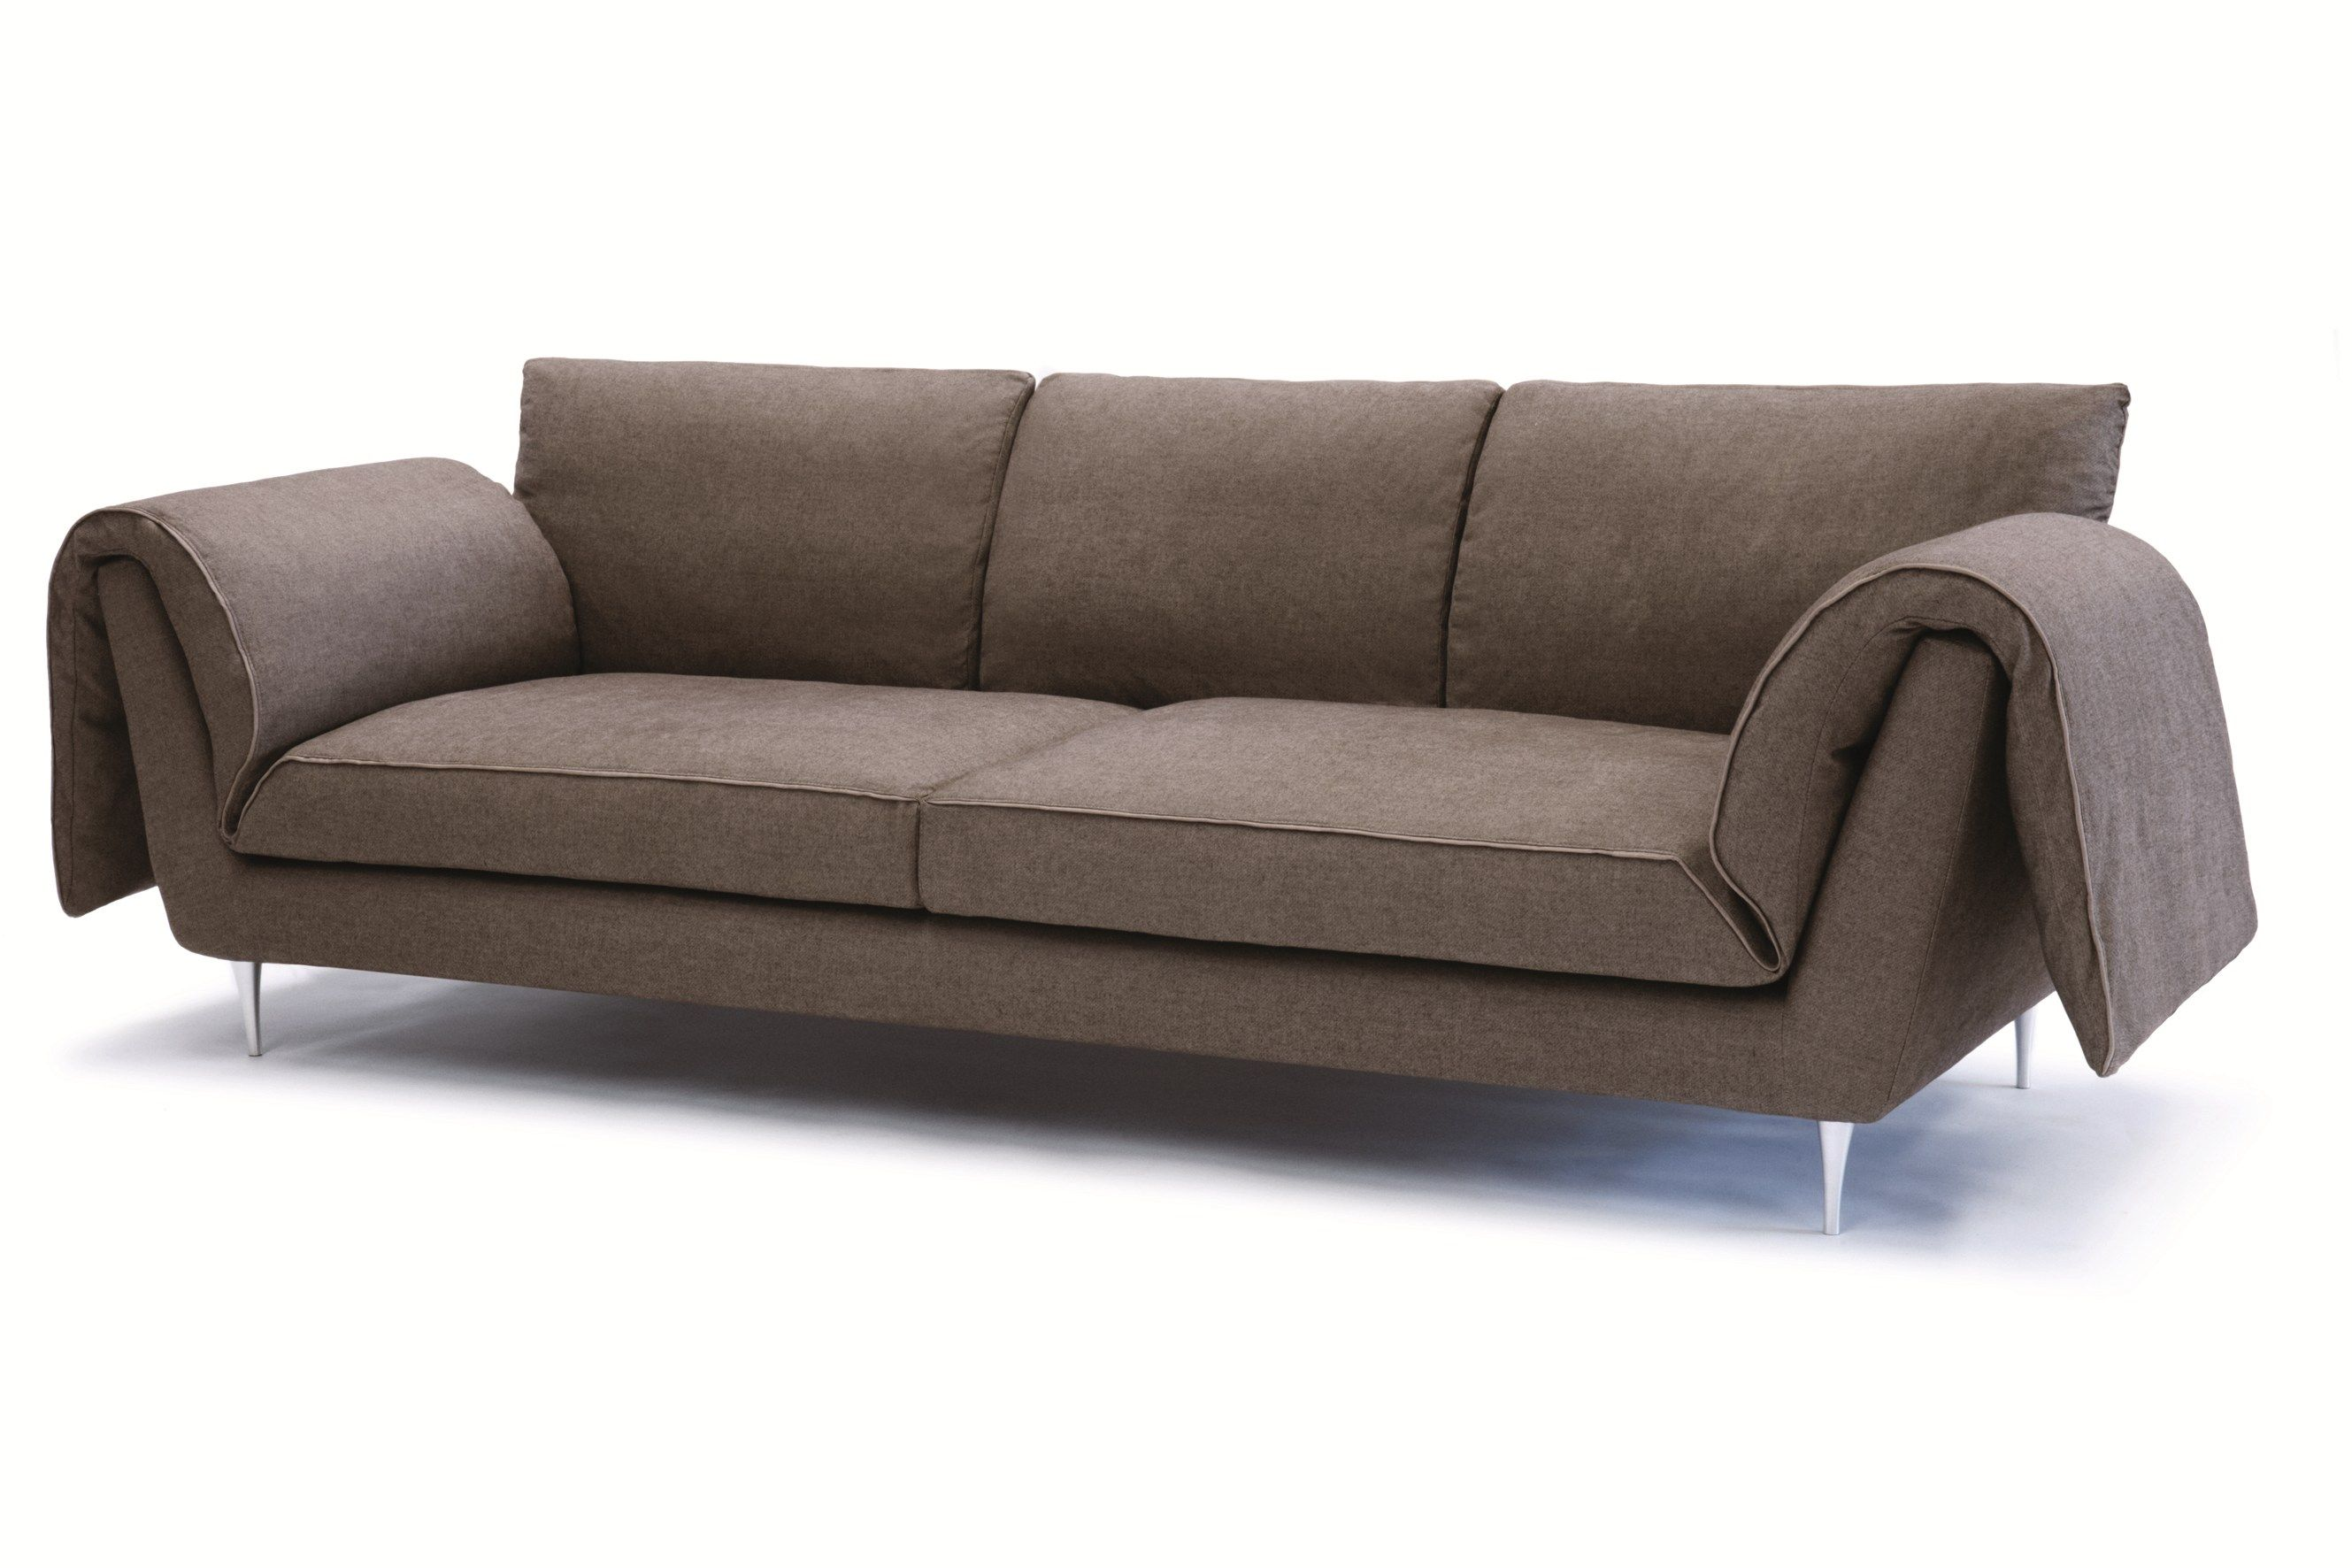 Contemporary style sectional modular sofa with removable cover